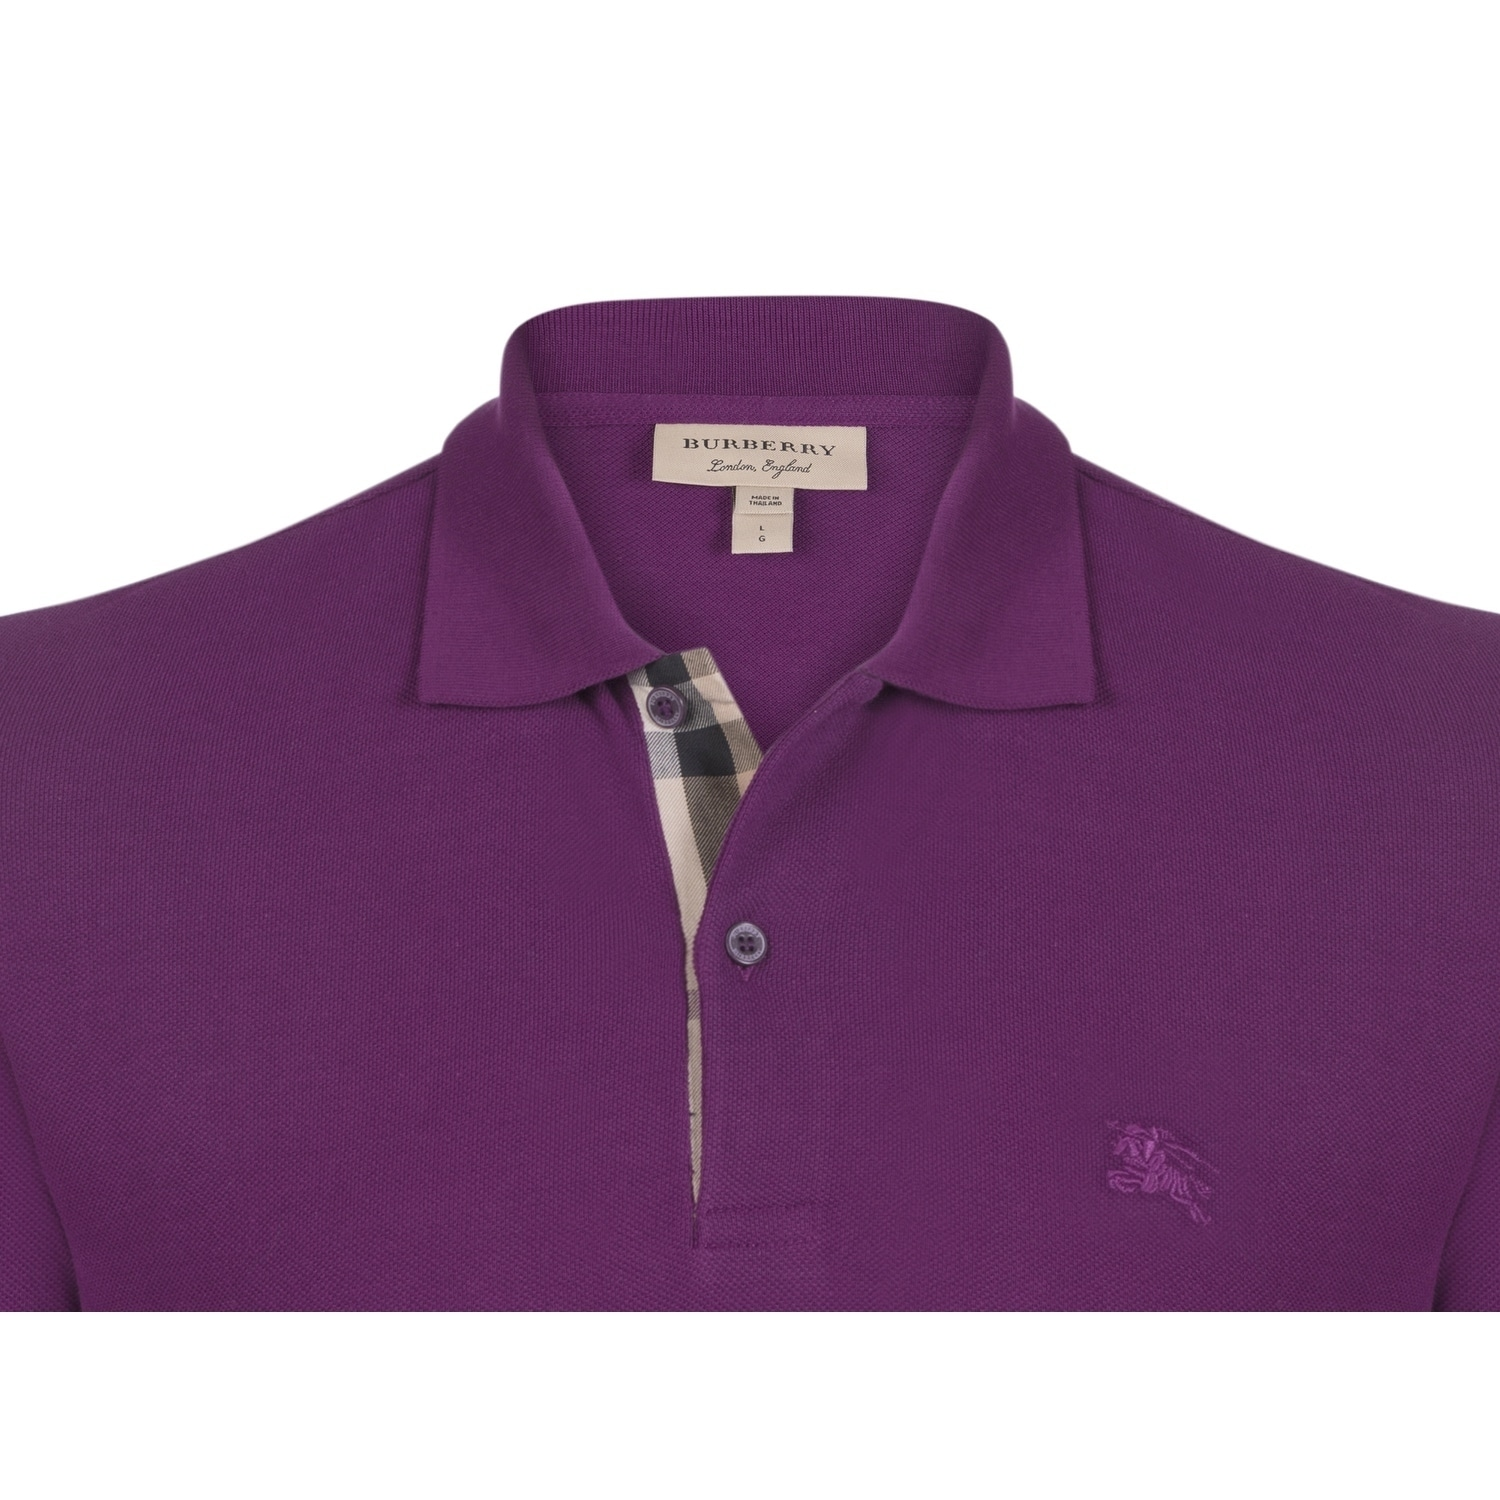 bf1dd7fc Shop Men's Burberry Short Sleeve Dark Royal Purple Polo Shirt - Free  Shipping Today - Overstock - 21852842